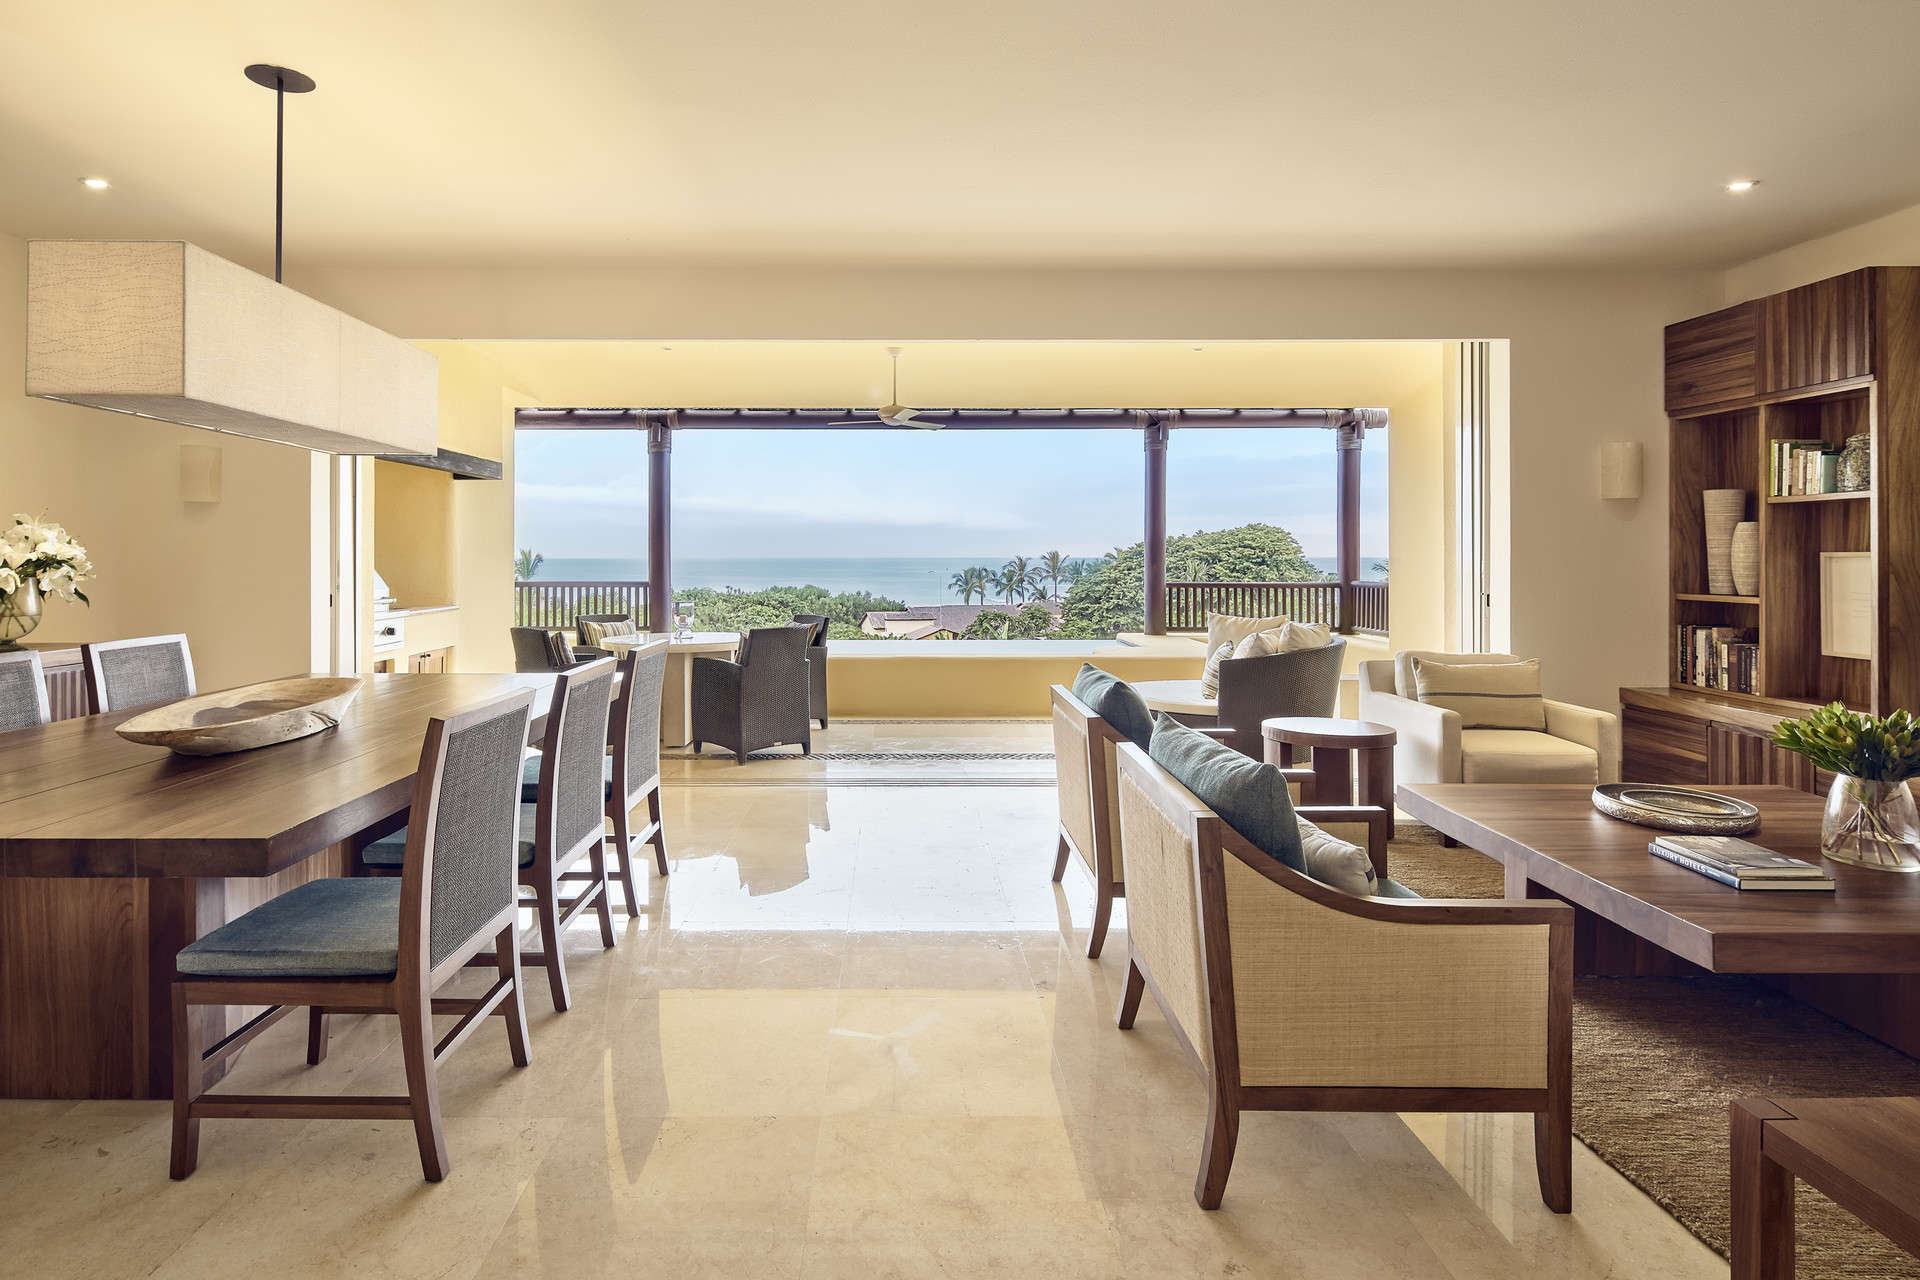 Luxury vacation rentals mexico - Punta mita - Four seasons punta mita - Ocean View 3 BRM - Image 1/6